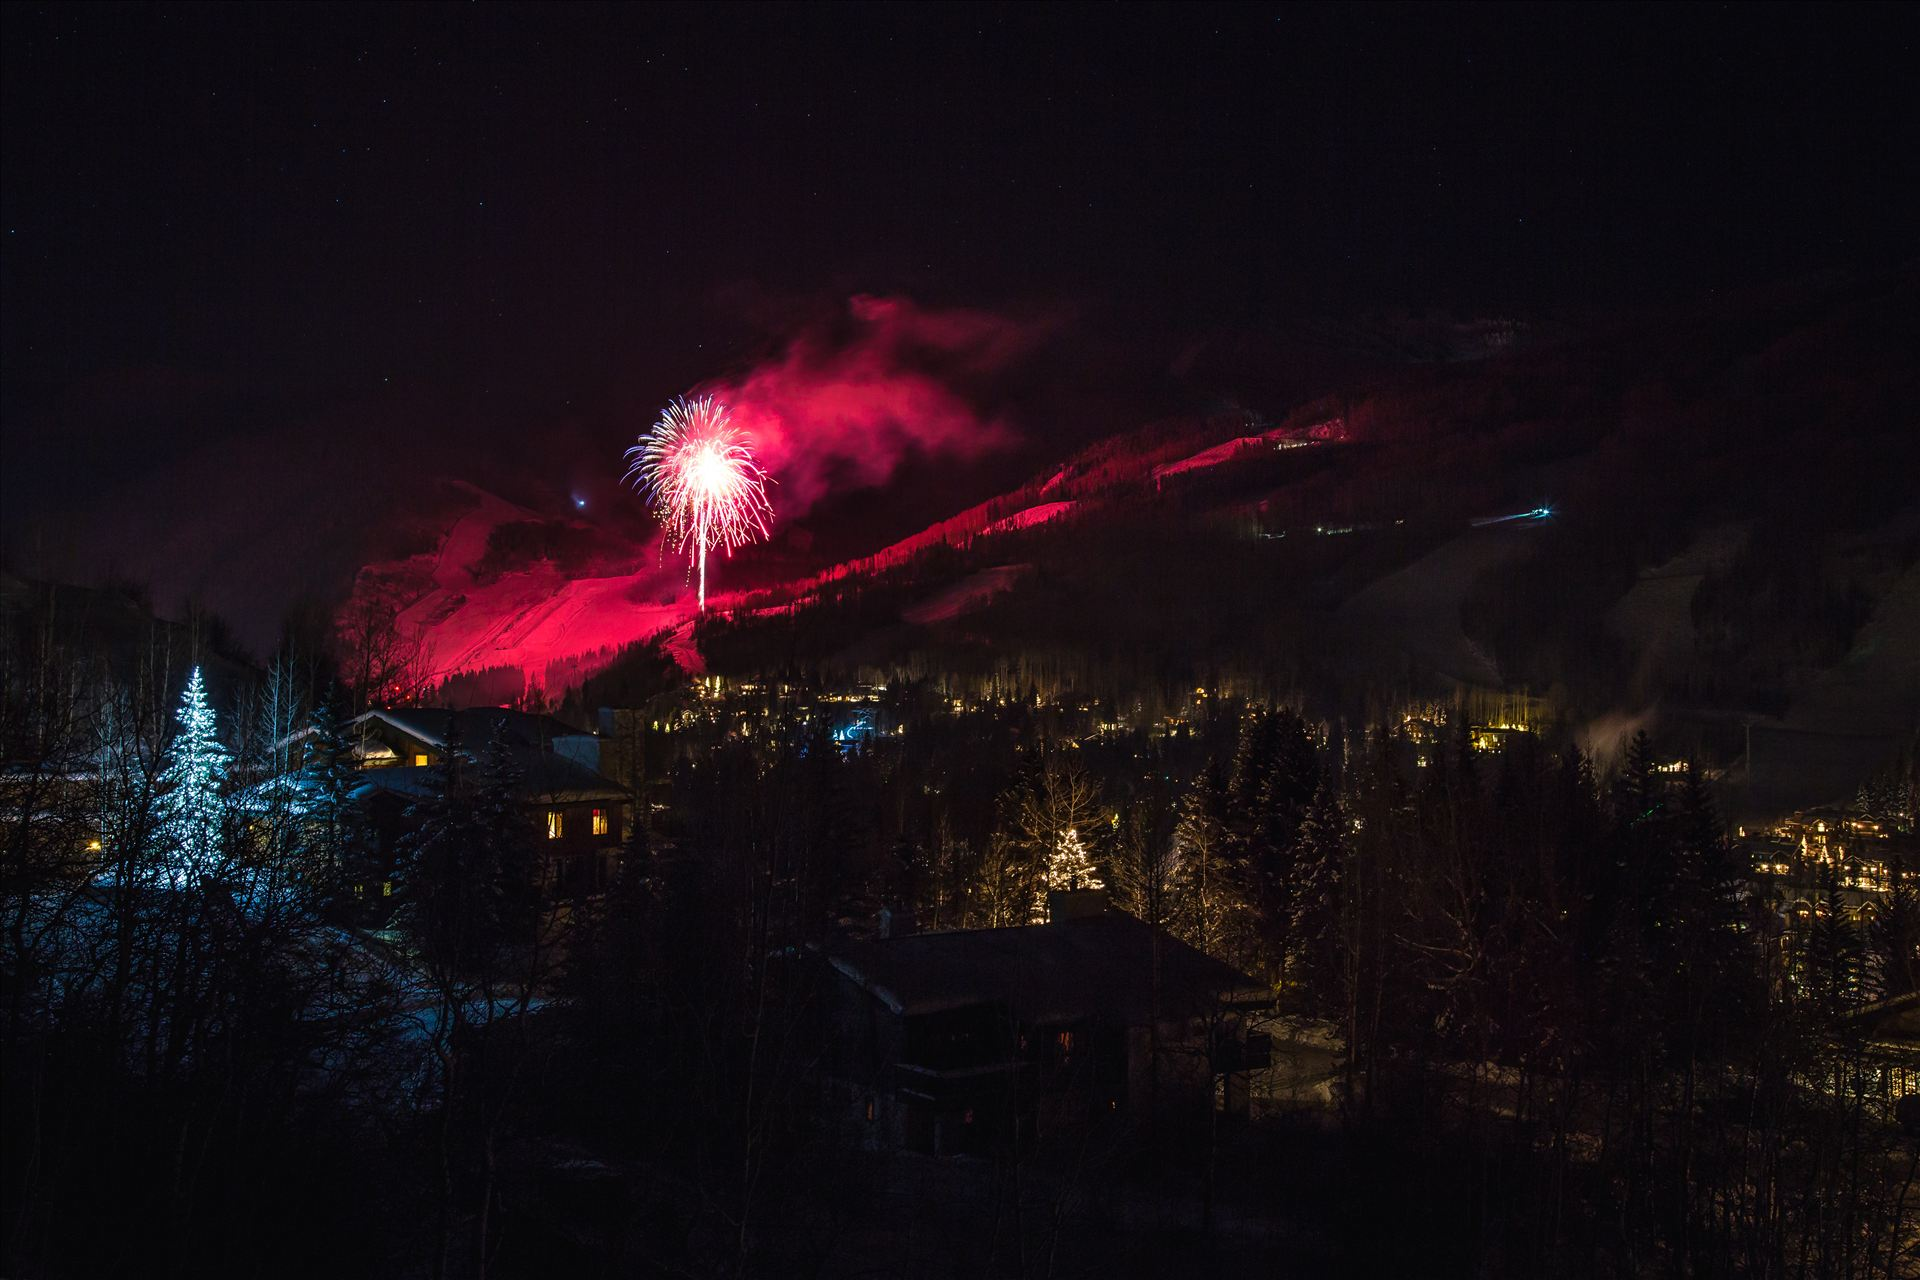 New Years Eve in Vail - A frigid end to 2015 in Vail, Colorado. by D Scott Smith